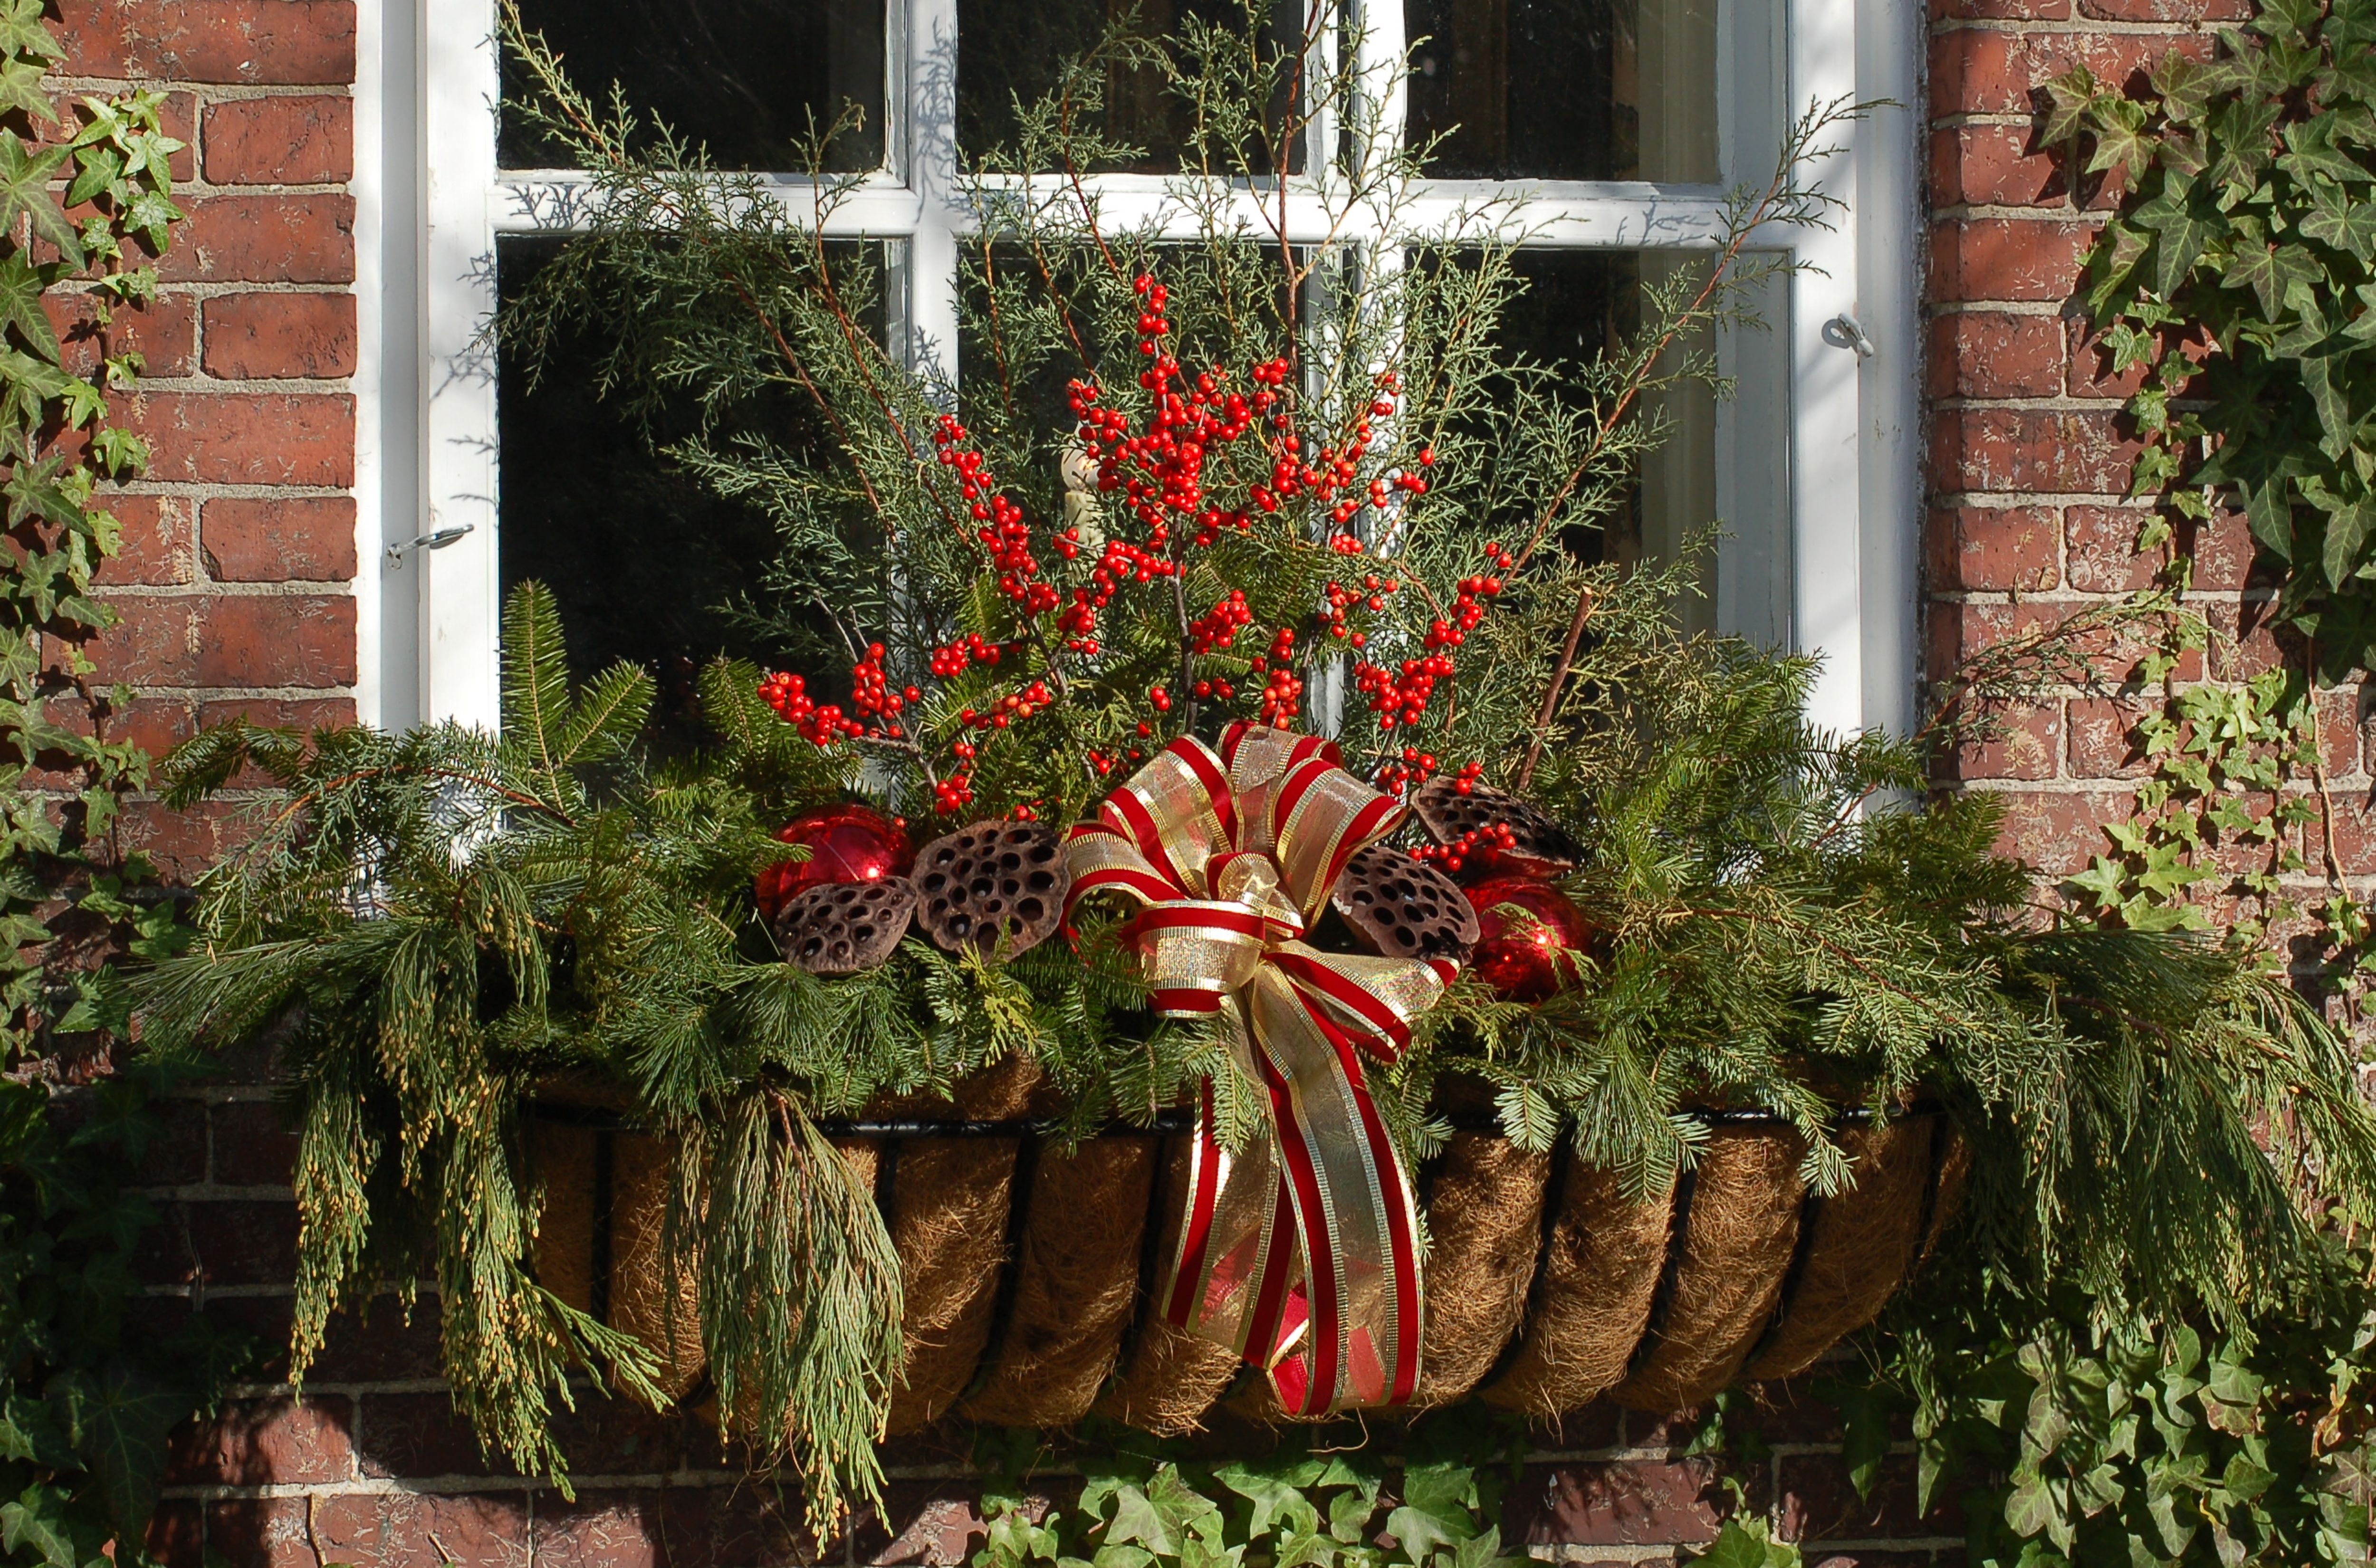 Window box decorated for Christmas with bow, ornaments, winterberry and lotus pods.